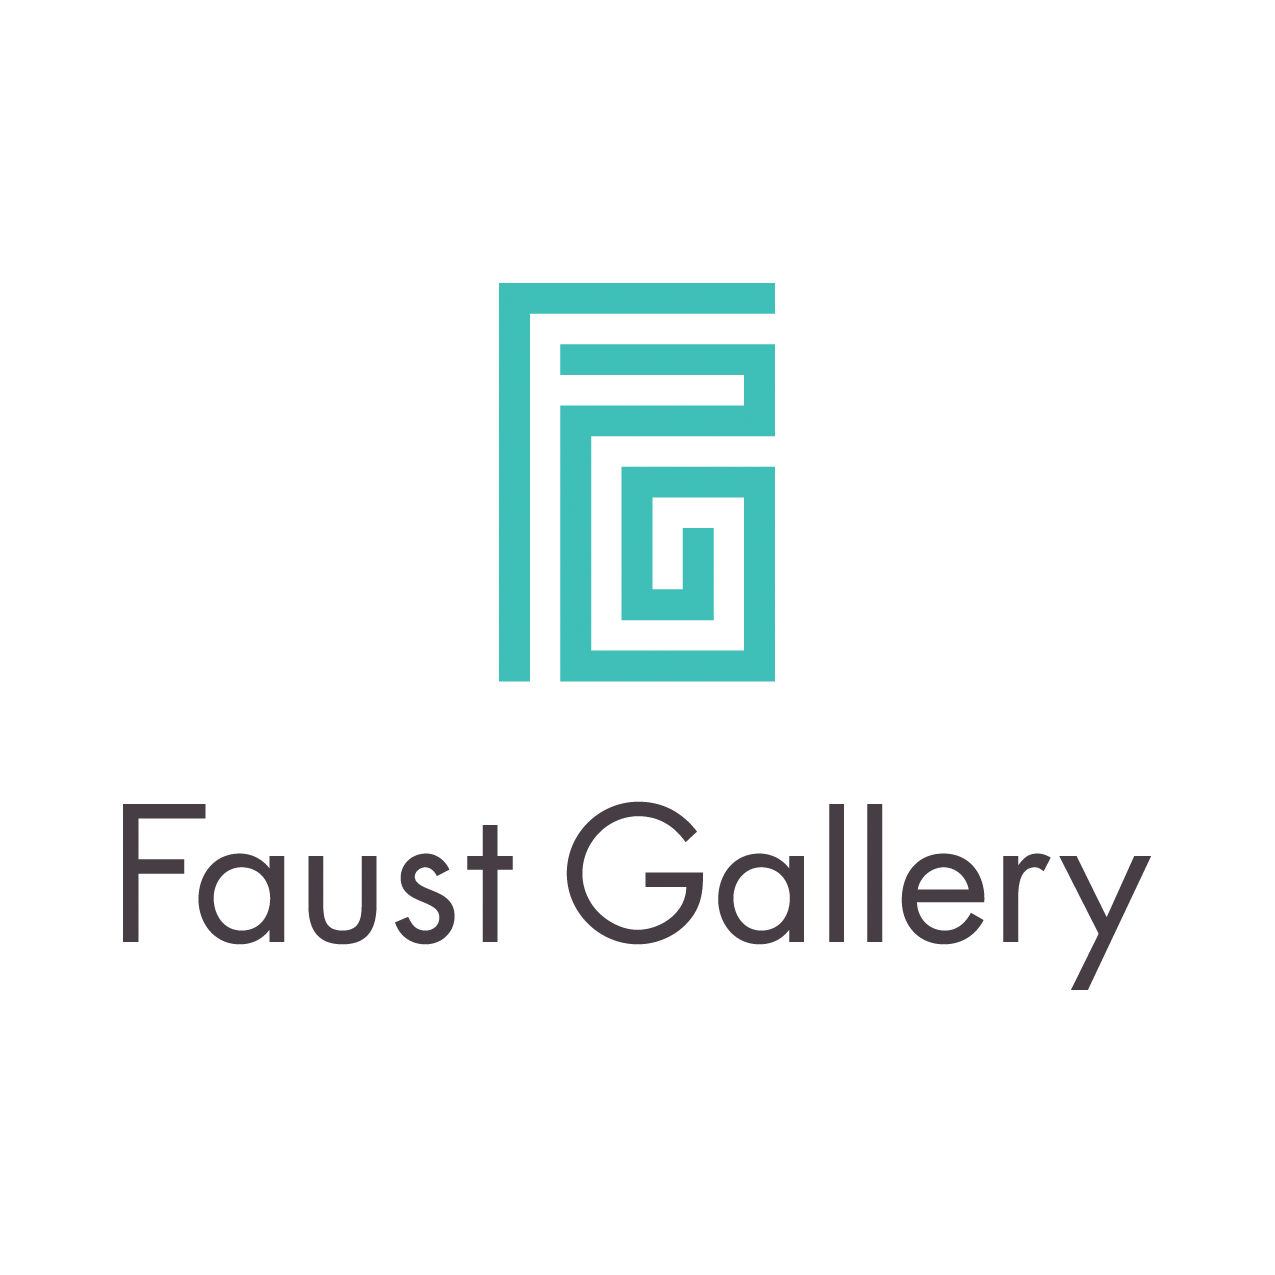 Faust Gallery